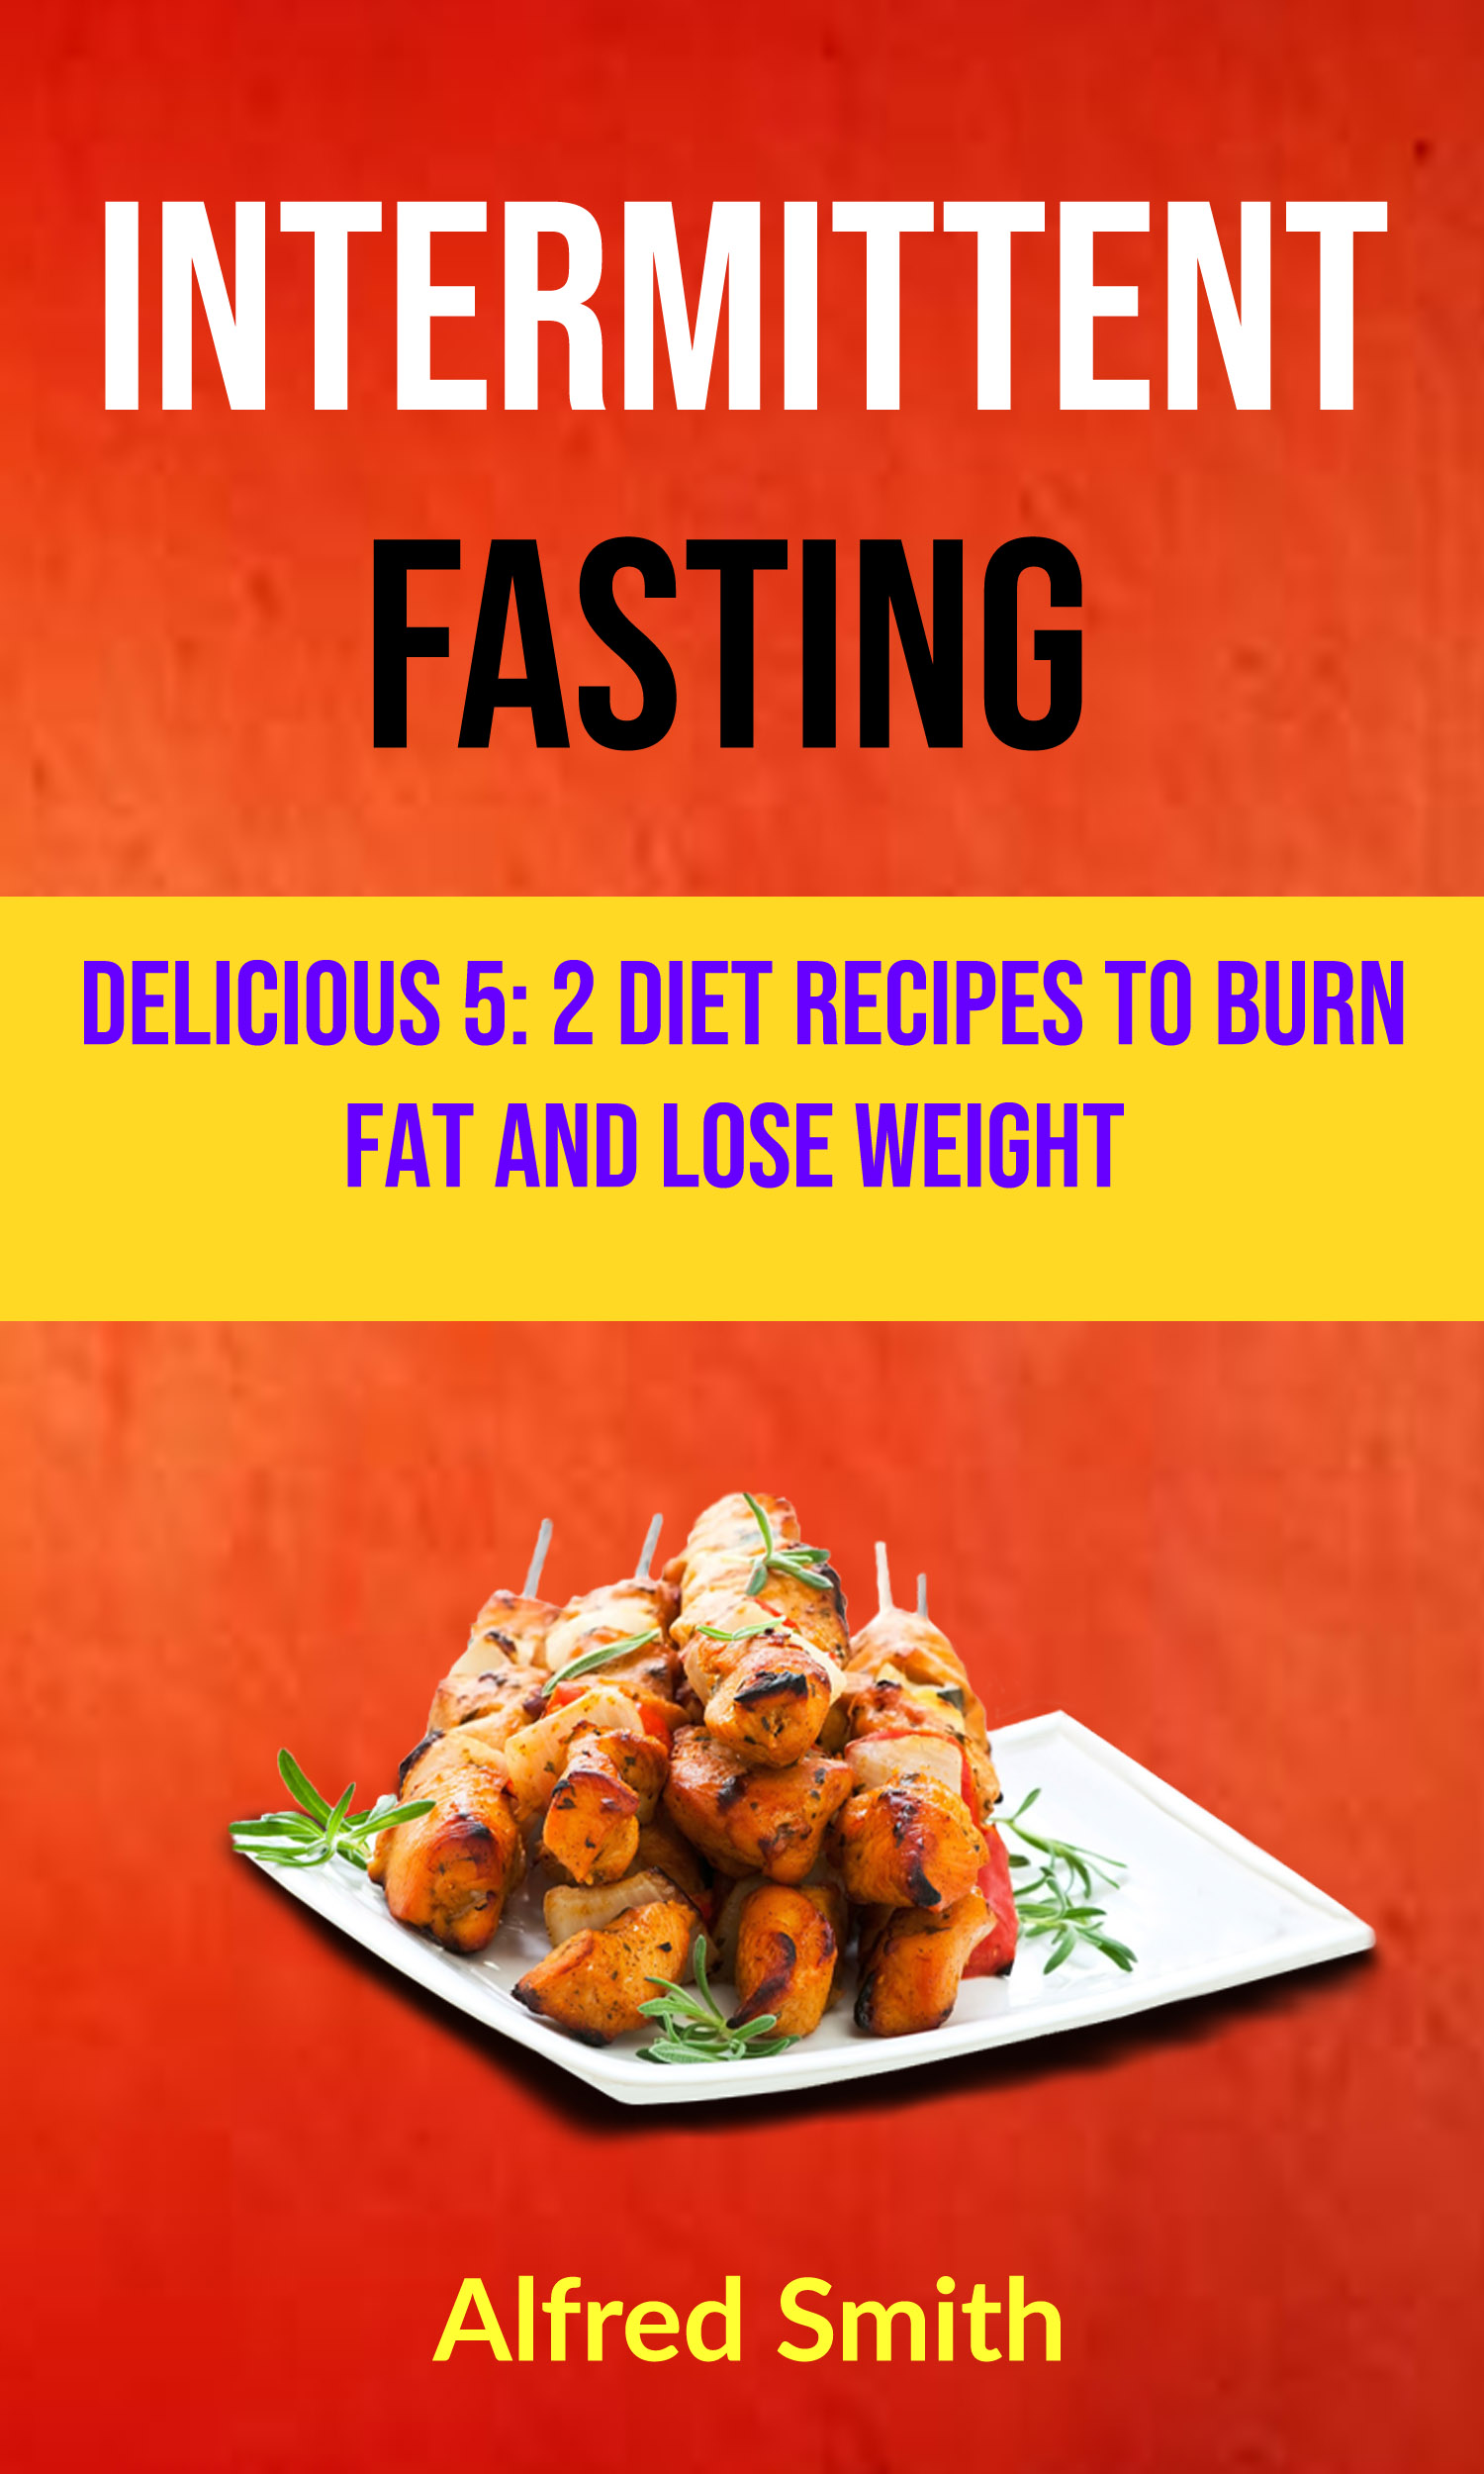 Intermittent fasting: delicious 5: 2 diet recipes to burn fat and lose weight